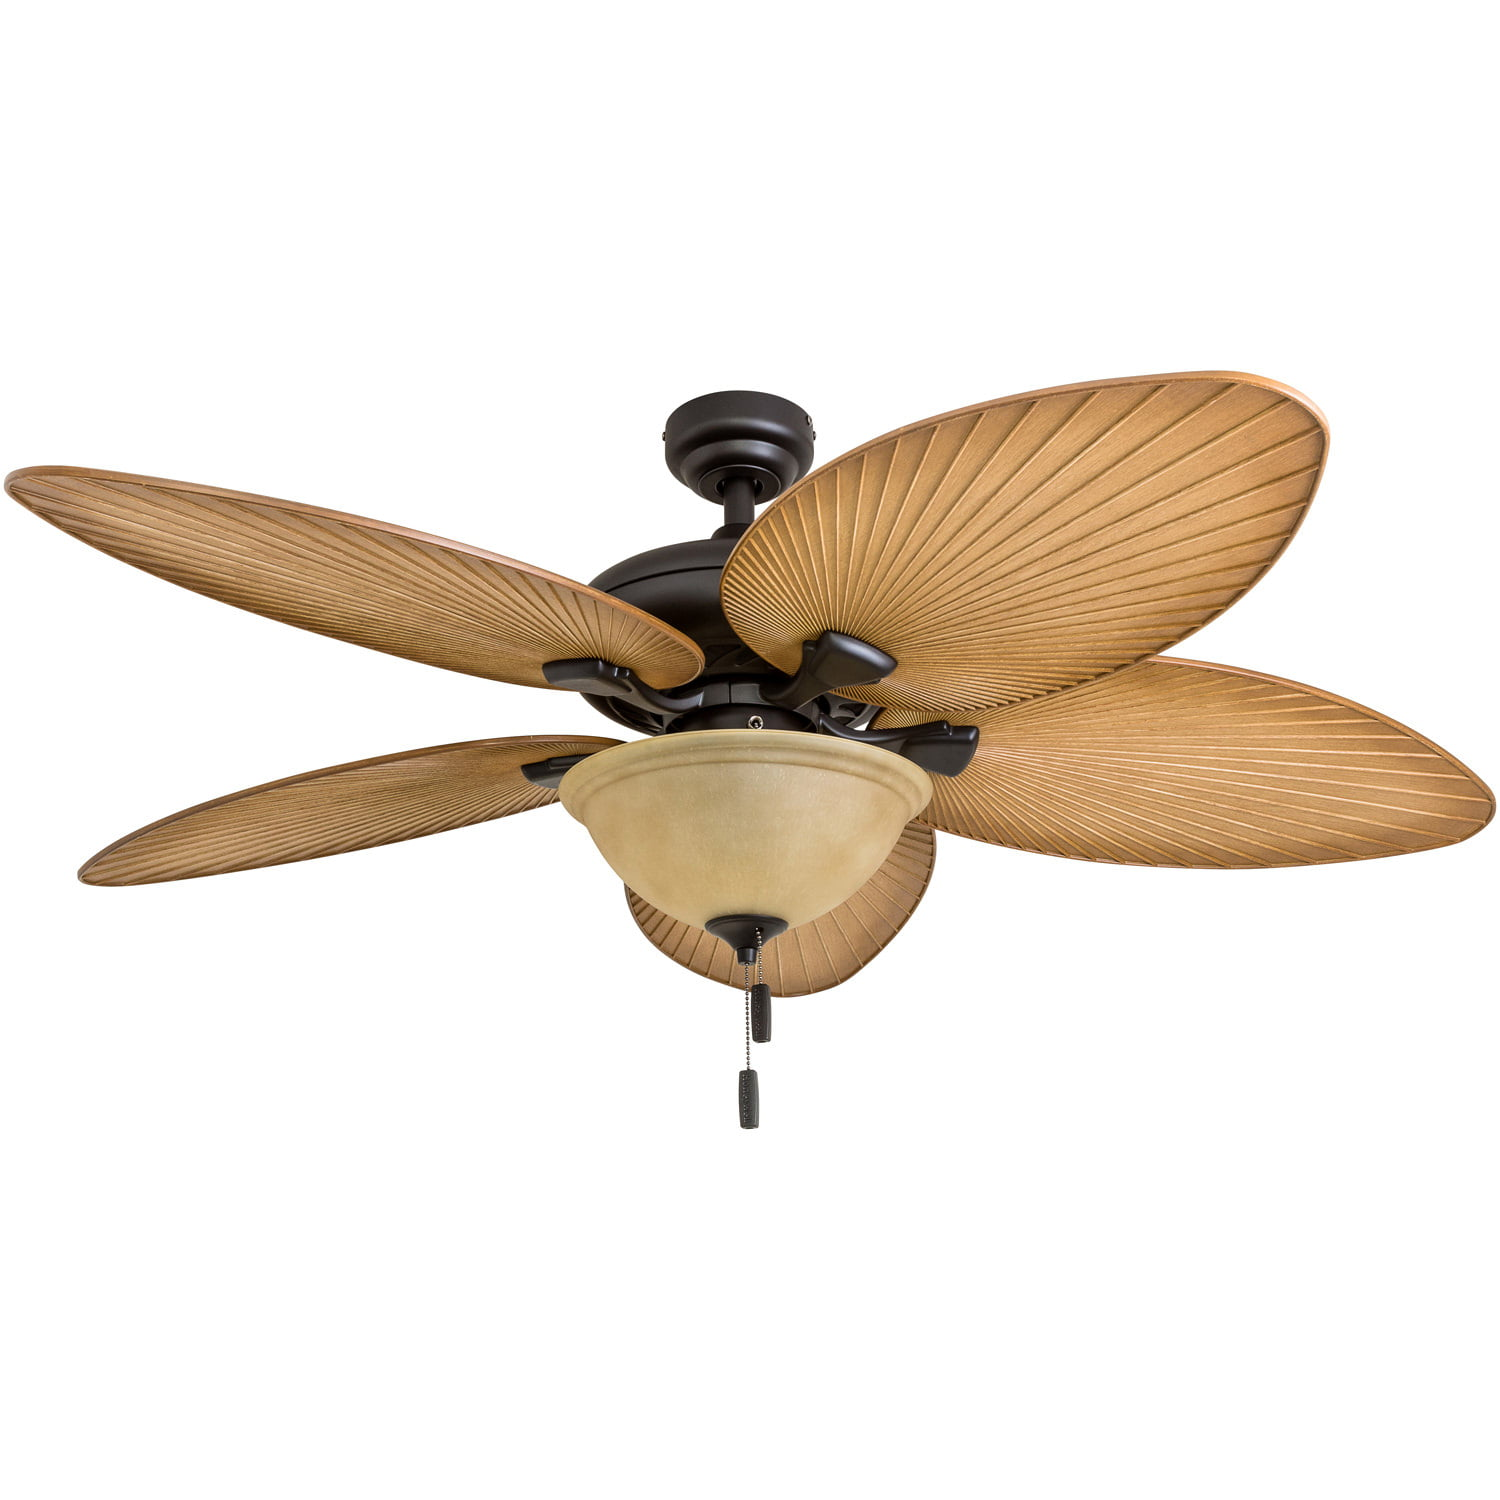 "Honeywell Palm Valley 52"" Bronze Tropical LED Ceiling Fan"